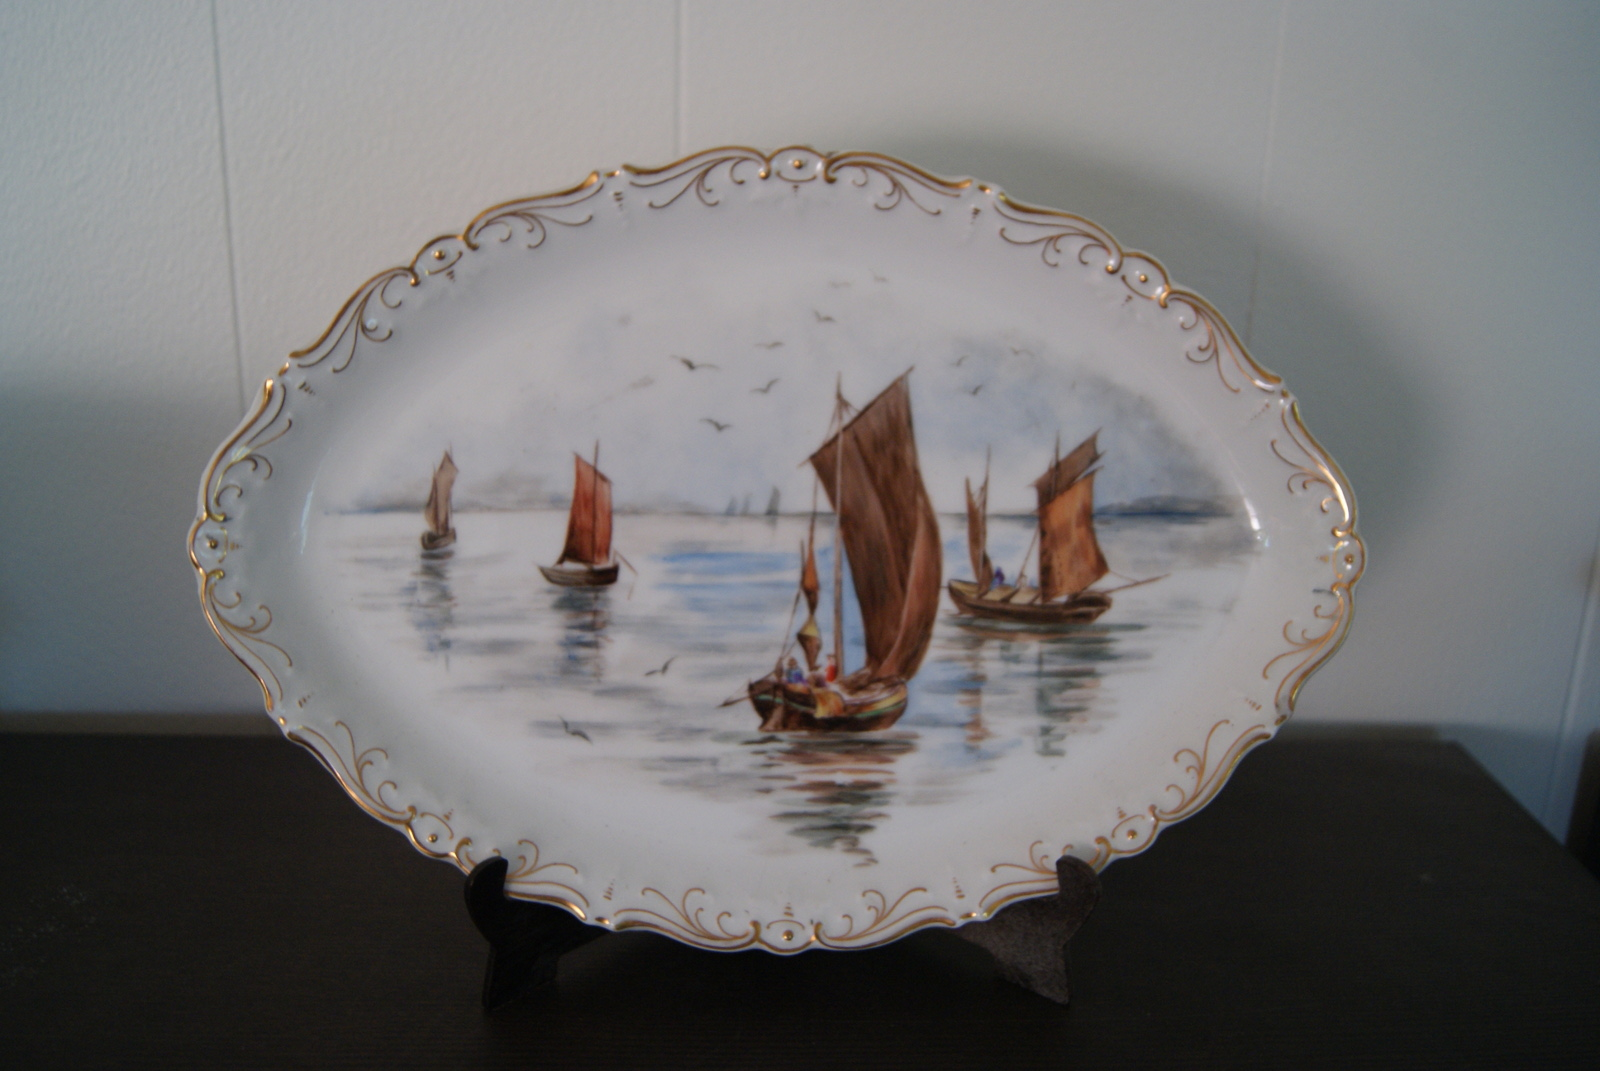 Niedersaltzbrunn dish with relief and with hand painted landscape with boats